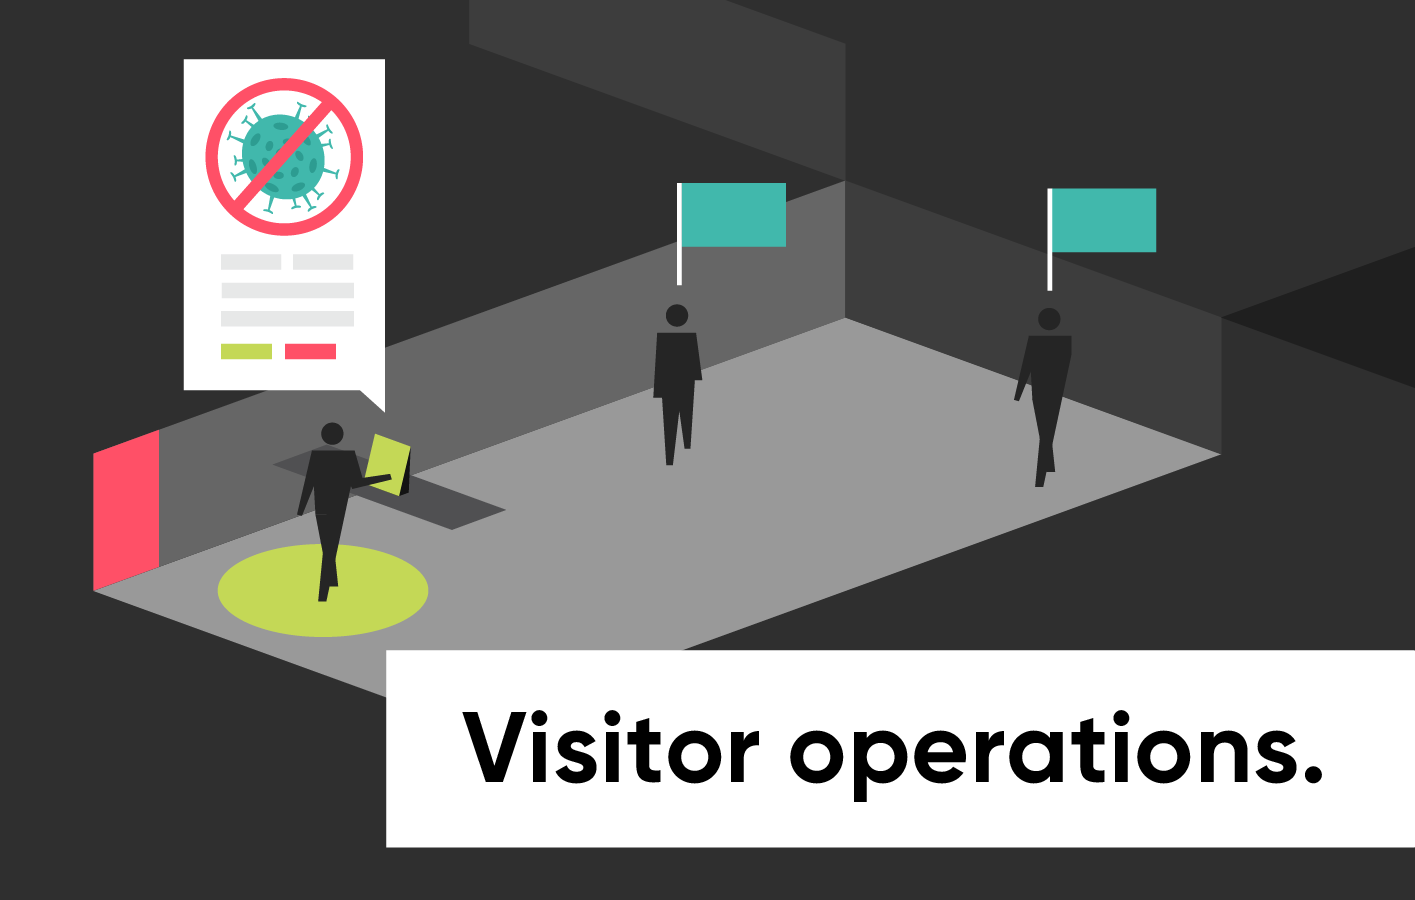 5 practical ways to manage your visitor operations during the COVID-19 outbreak Photo